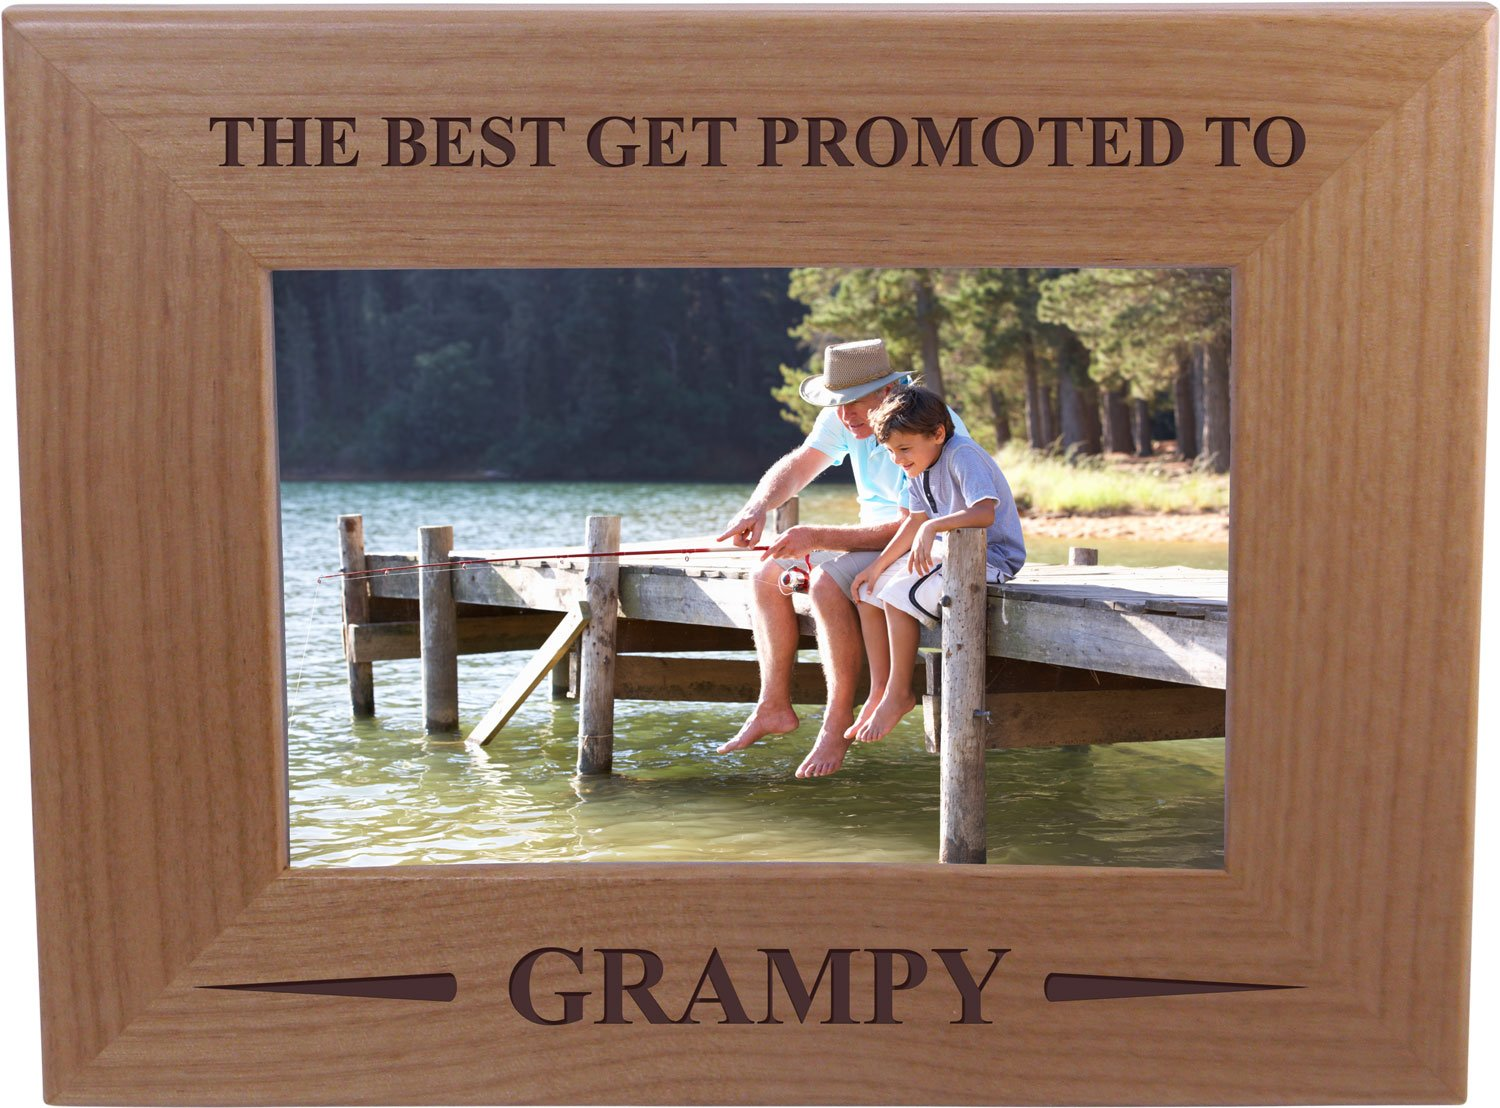 Only The Best Get Promoted Grampy - 4x6 Inch Wood Picture Frame - Great Gift for Father's Day, Birthday, or Christmas Gift for Dad, Grandpa, Grandfather, Papa, Husband by CustomGiftsNow